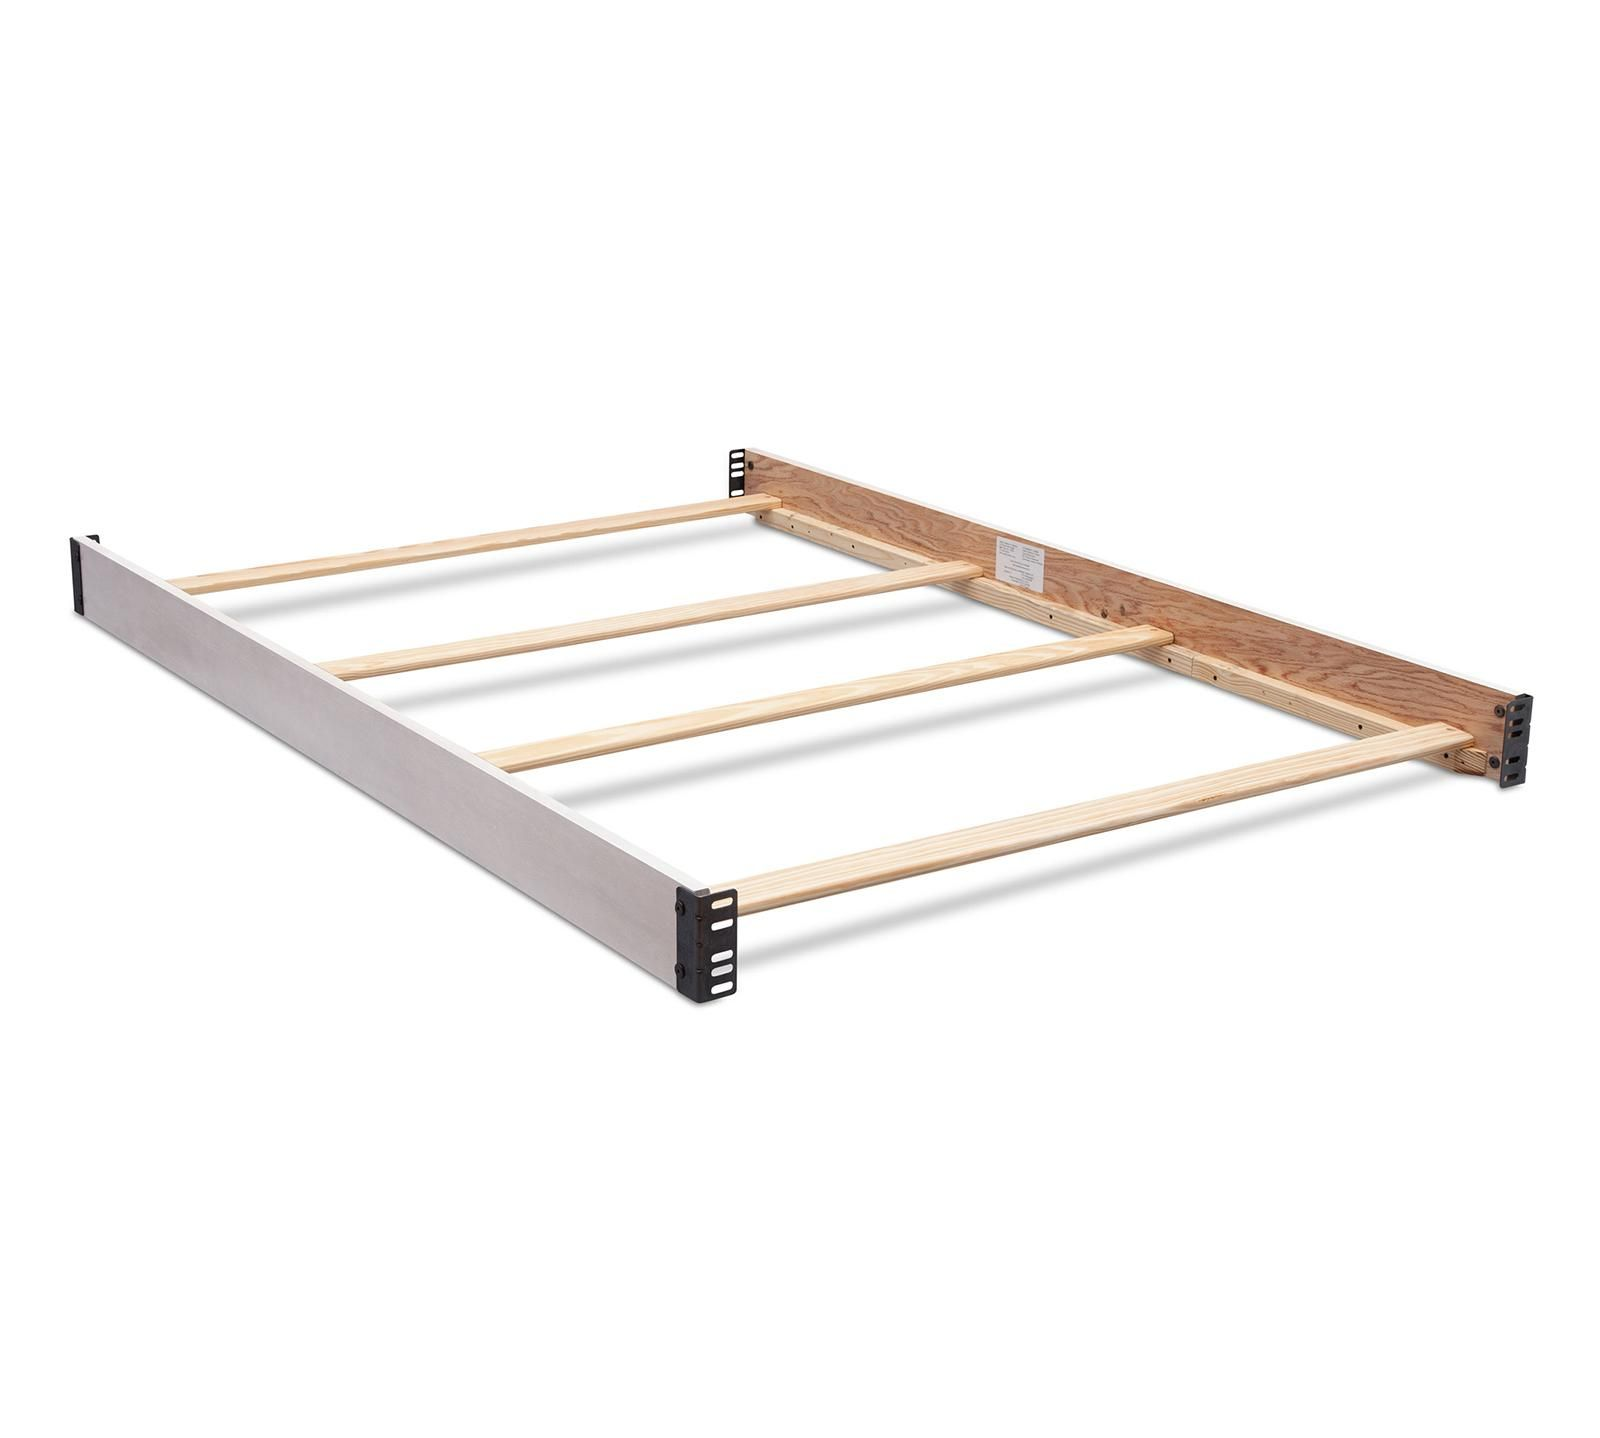 Beautyrest Tivoli Full Size Wood Bed Rails In 2020 Wood Beds